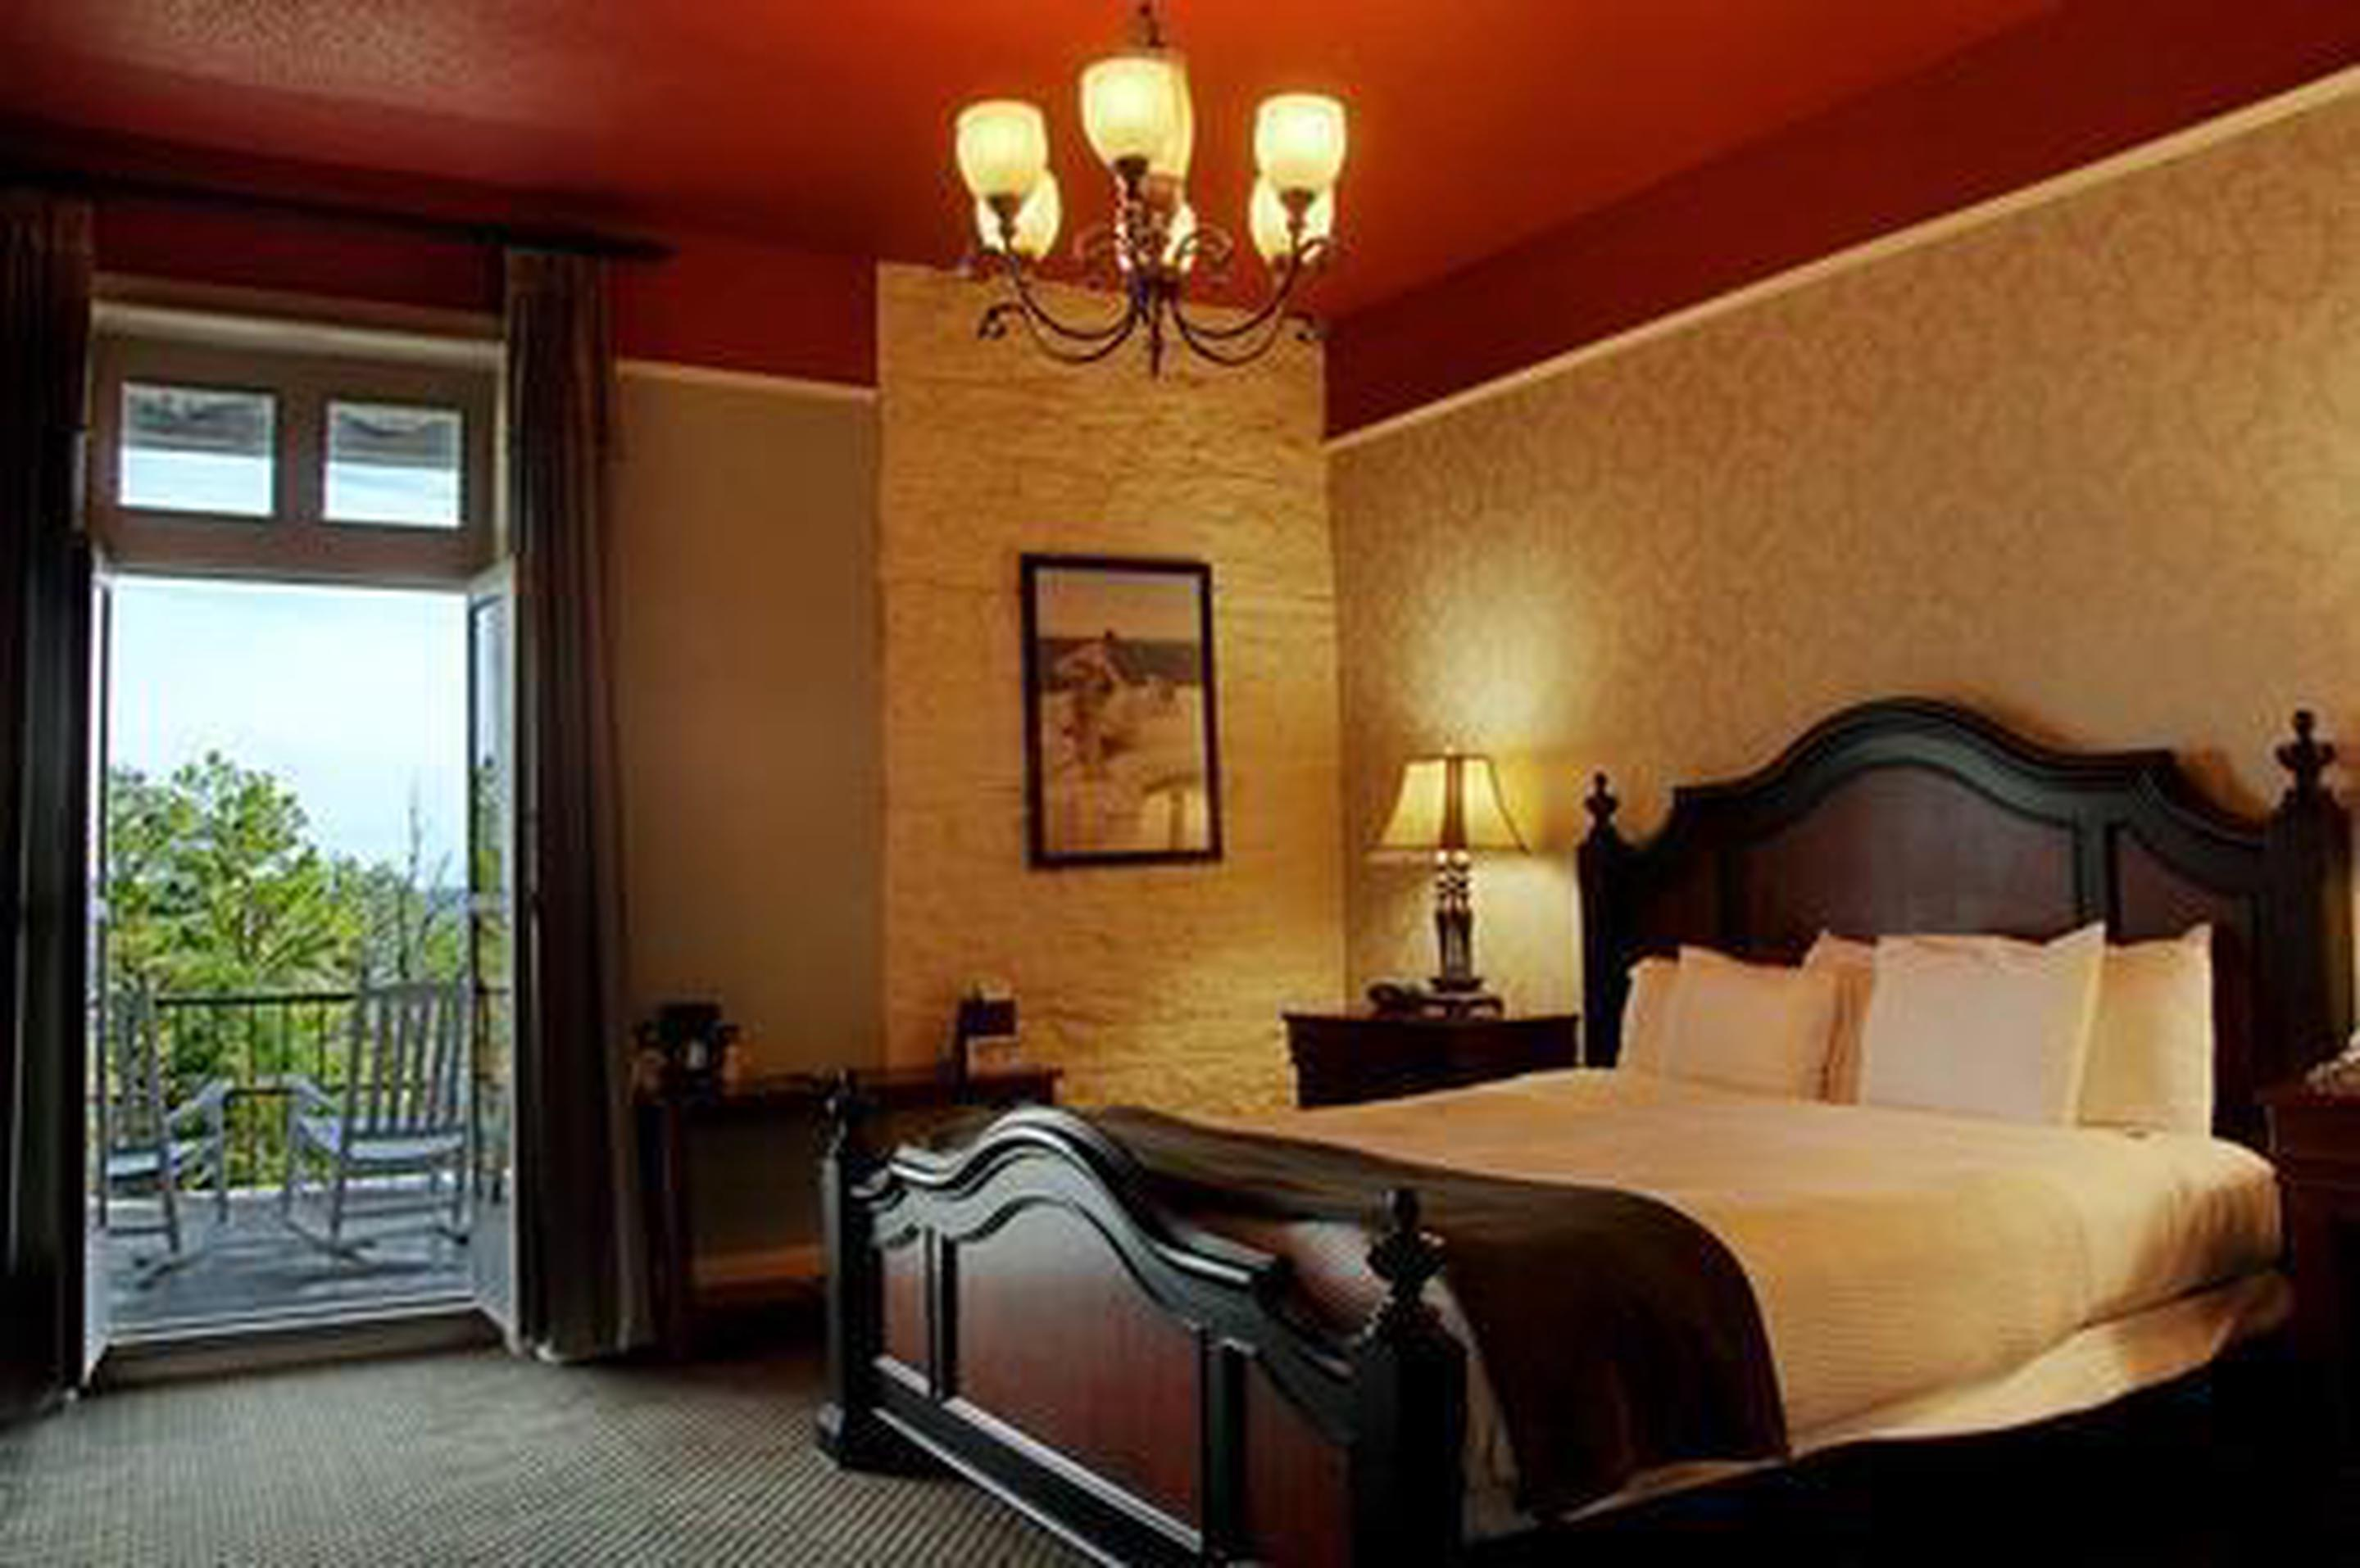 GuestroomEach of the 72 guestrooms offer friendly accommodations with Victorian style.  Guests can choose between Jacuzzi Suites, Penthouses, Parlor Suites and more.